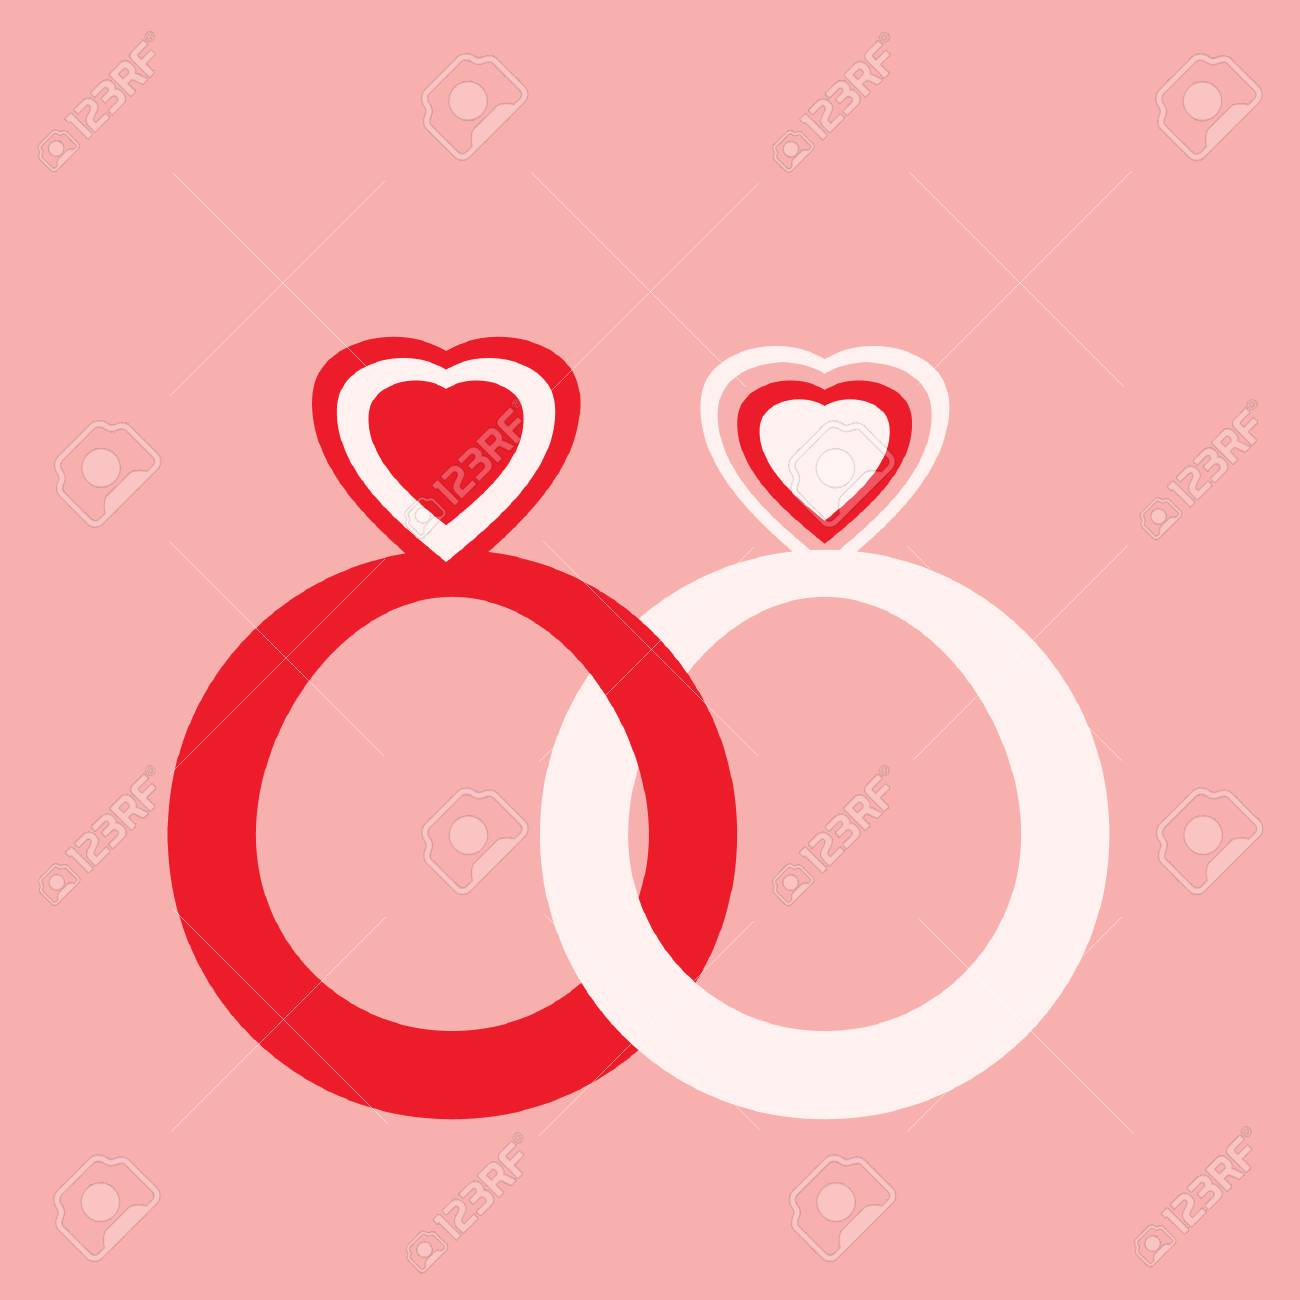 Wedding Rings Royalty Free Cliparts, Vectors, And Stock Illustration ...